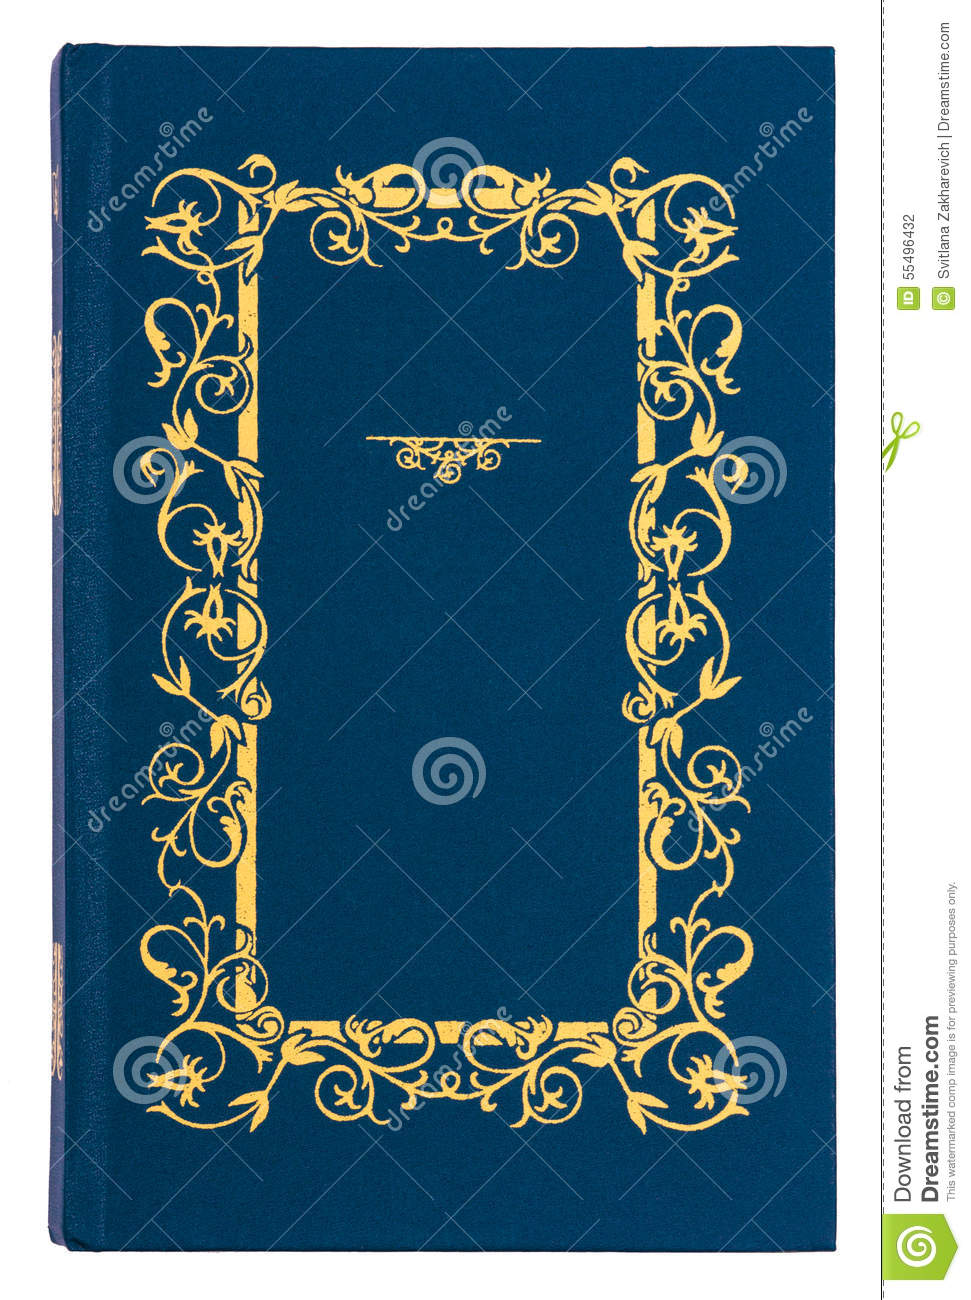 Book Cover White Background : Blue with gold pattern vintage book cover stock